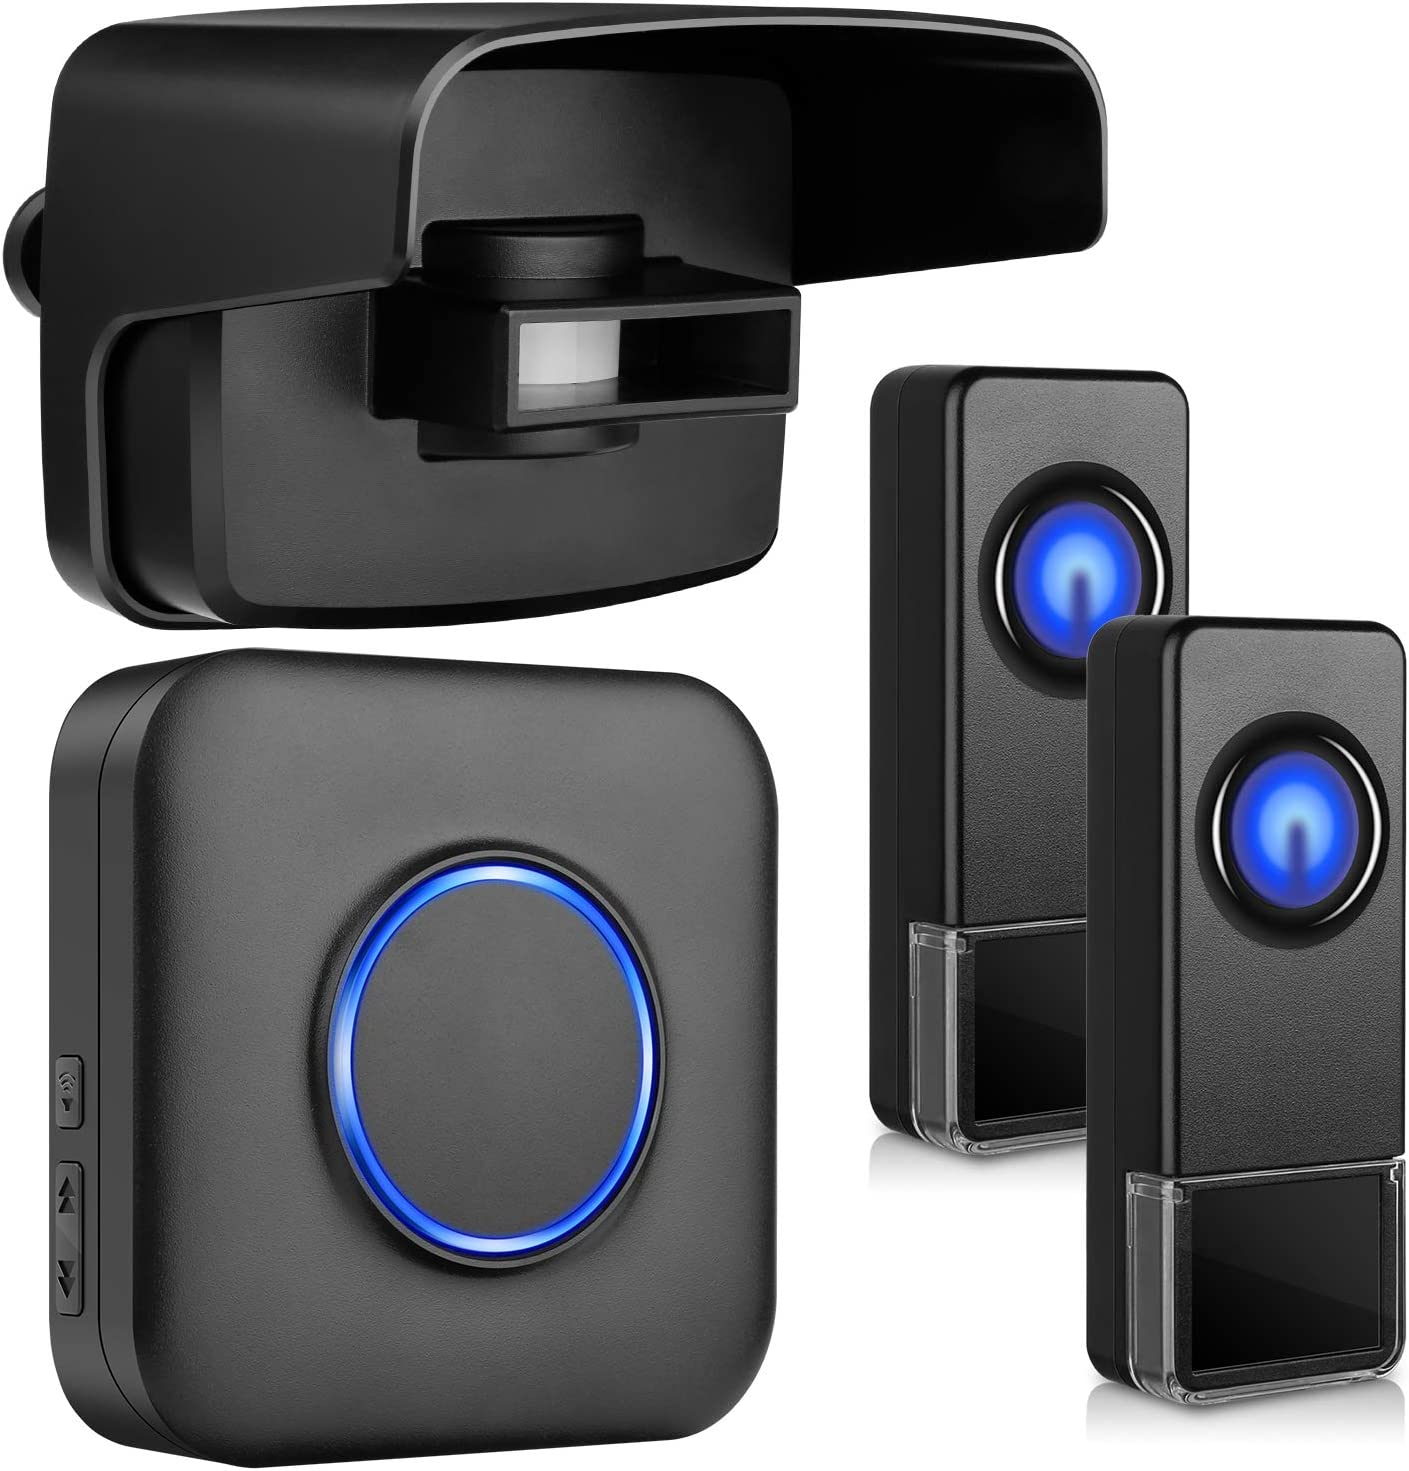 Driveway All stores sale are sold Alarm System Weatherproof Outdoor Motion Detect Sensor